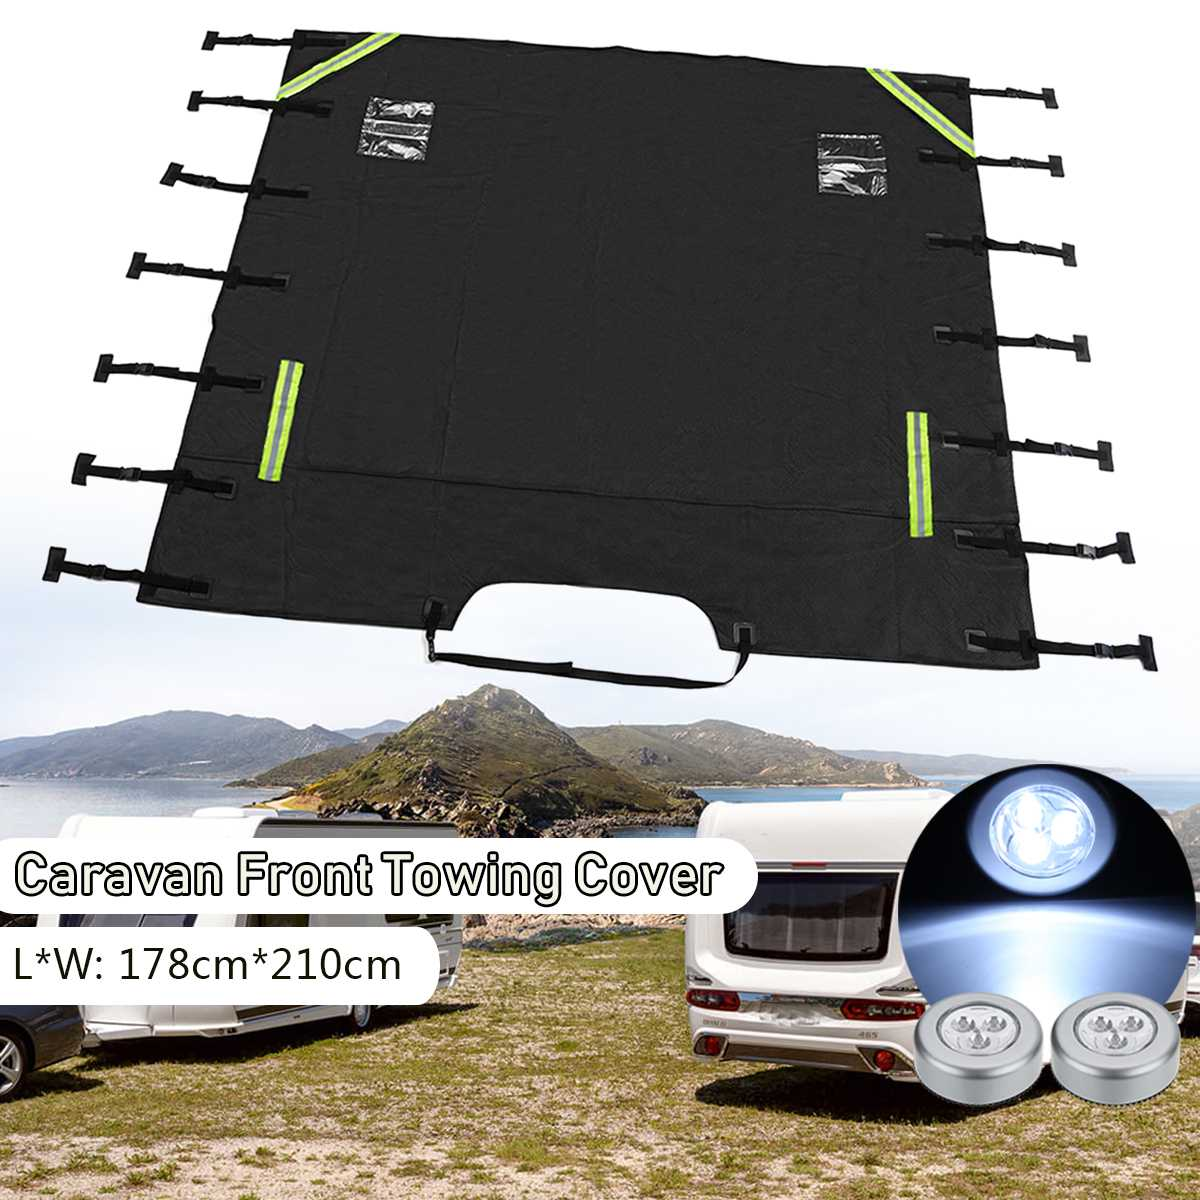 Universal Caravan Front Towing Cover Protector for RV Motorhome 2 LED Lights